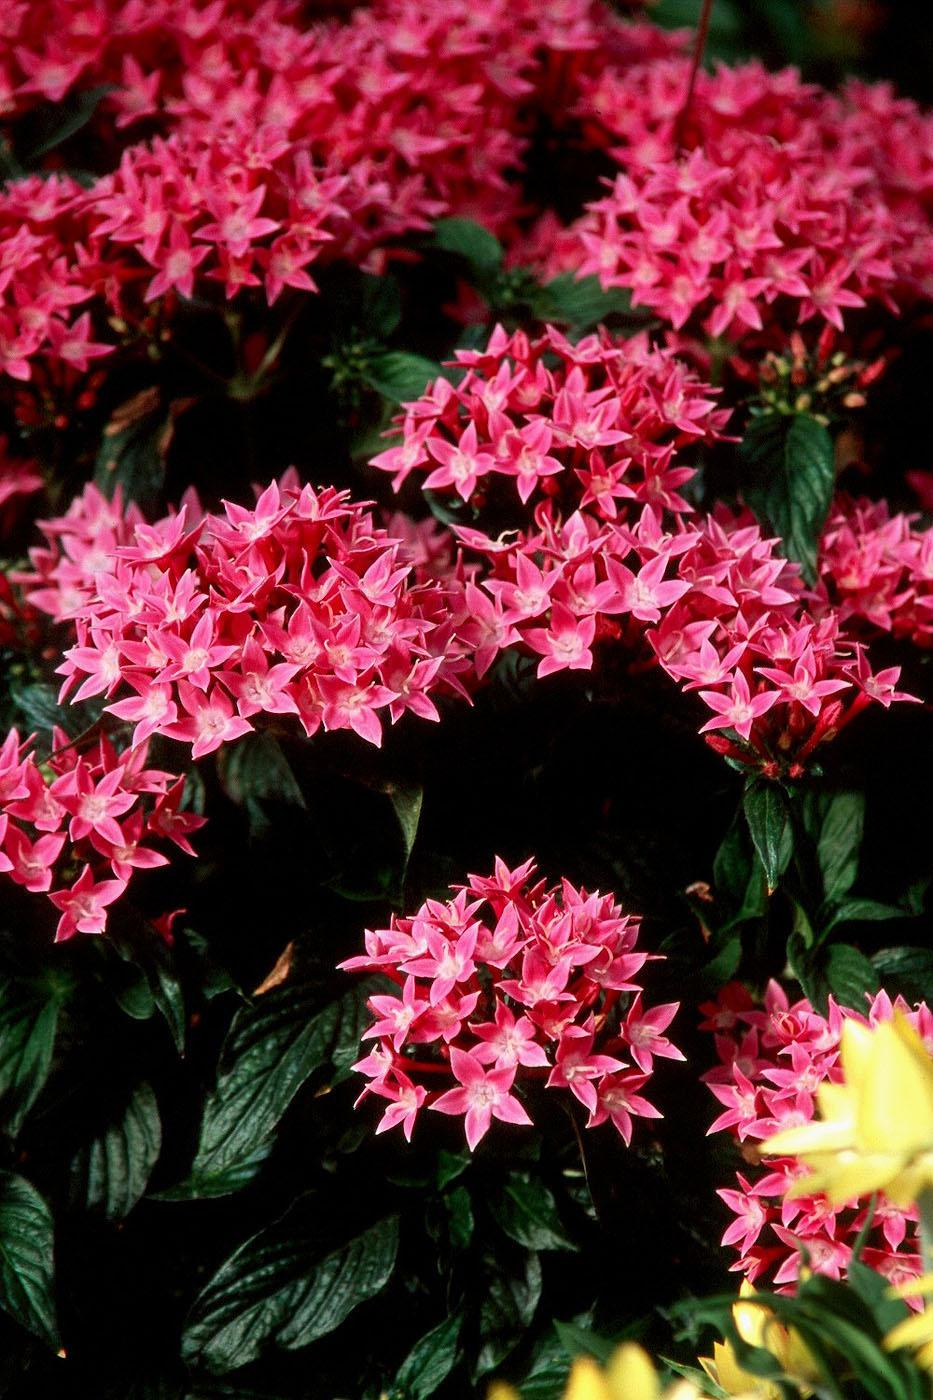 Butterflies, hummingbirds and gardeners alike will be delighted with the many new series of pentas being offered, such as this beautiful Bismarck variety. If these new varieties are not available at local nurseries this year, gardeners can rely on Mississippi Medallion Award-winning Butterfly pentas for a lush, tropical look and tons of butterfly guests.